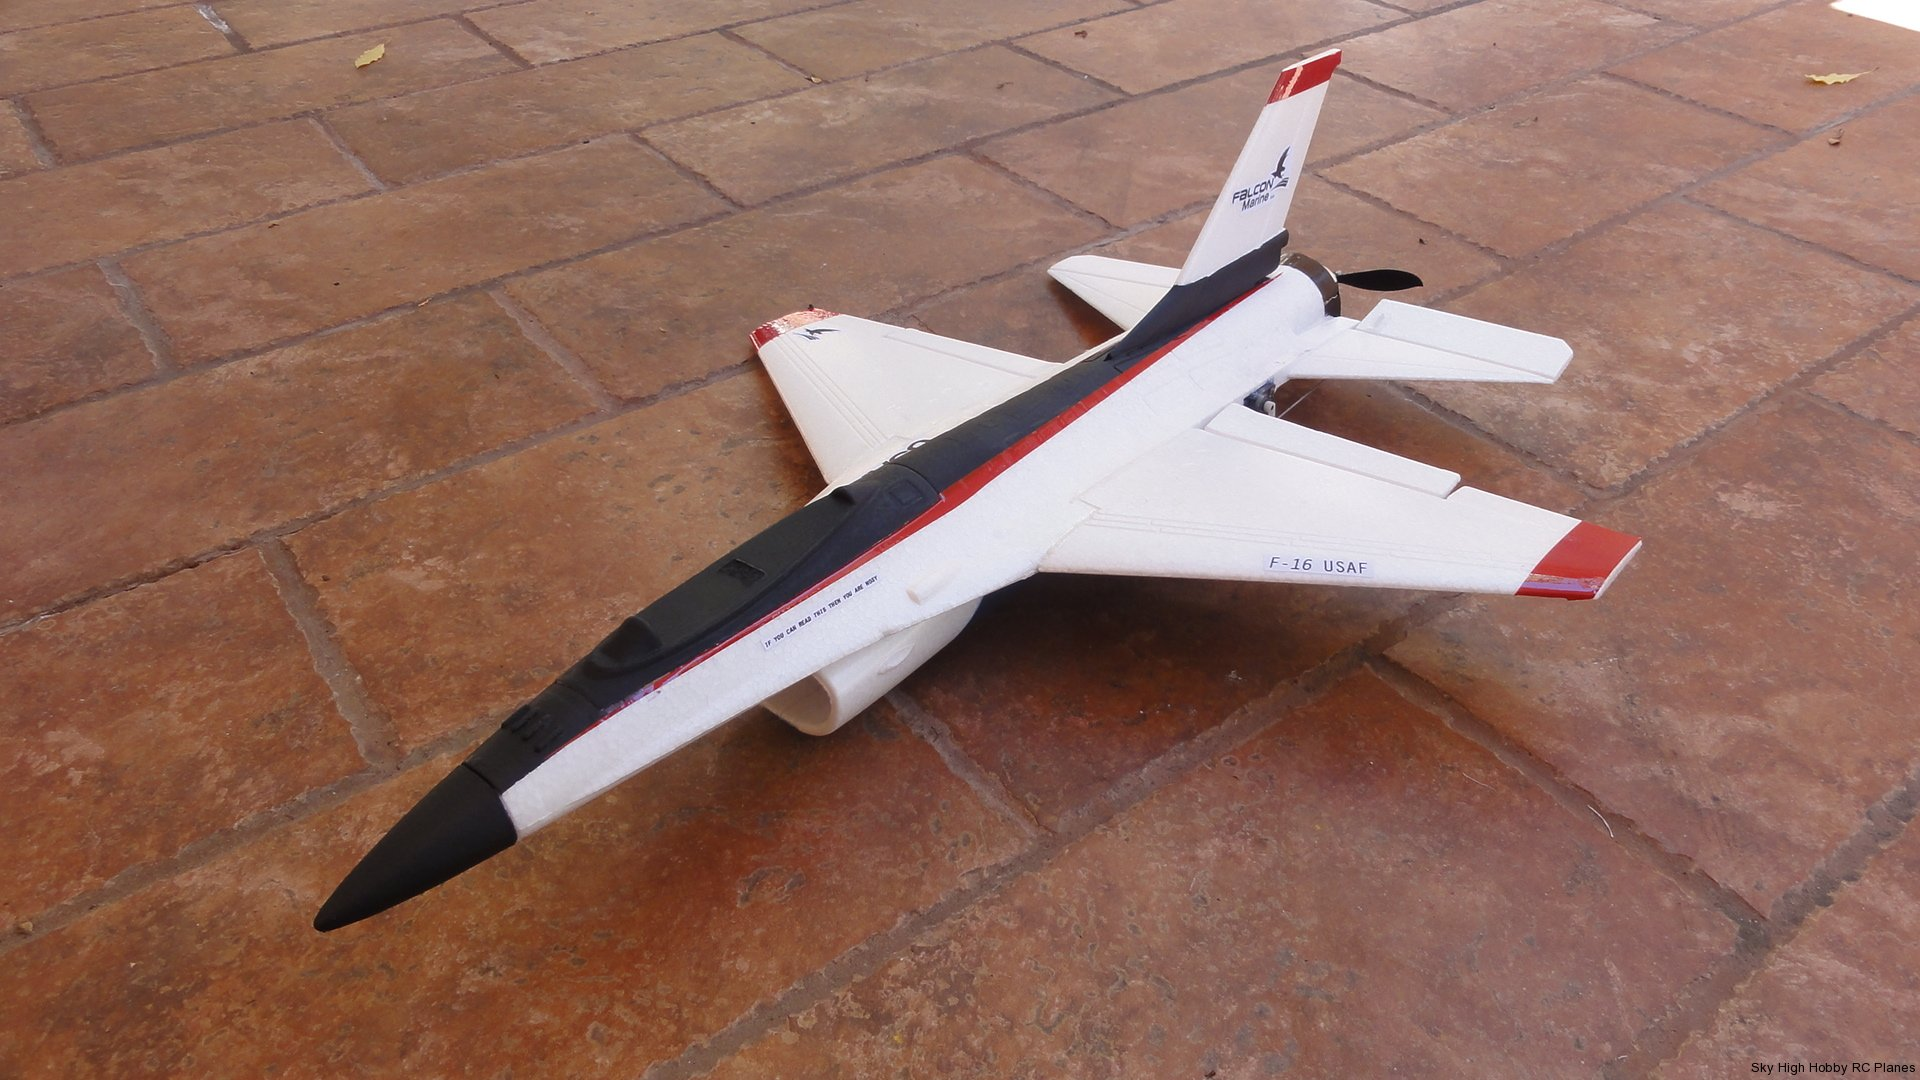 design and fabrication of radio controlled airplanes Rc groups - the most active radio control model community: electric and fuel rc airplanes,rc helis,rc boats and rc cars features discussion forums, blogs, videos and classifieds rcgroups: remote control, radio control planes, drones, cars and boats.